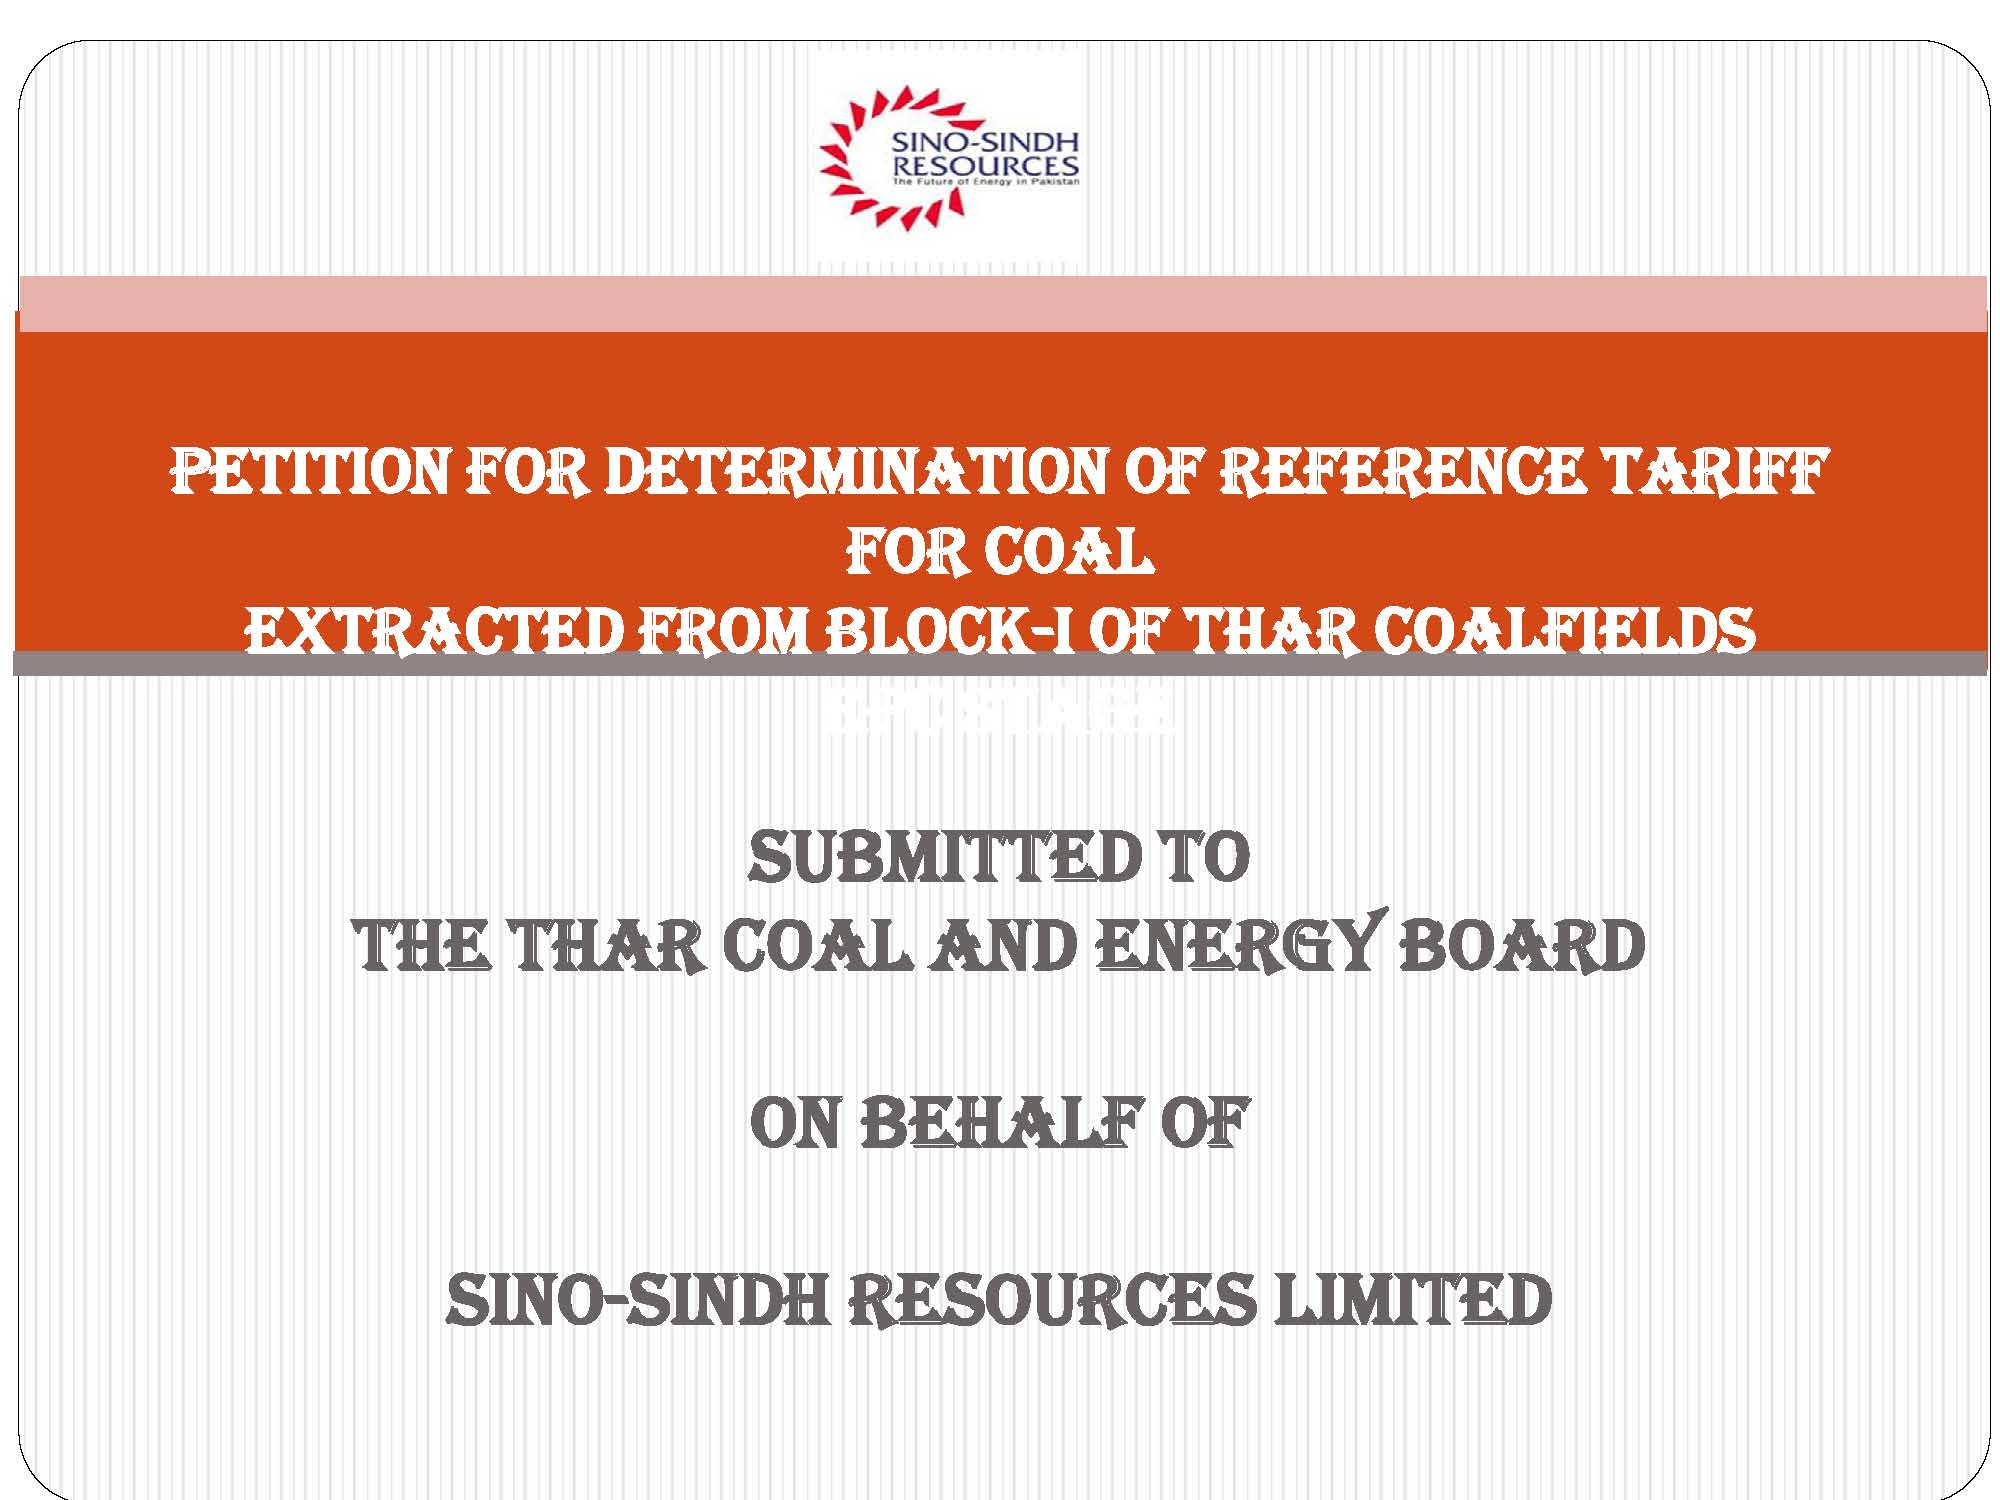 Presentation on Petition for Determination of Reference Tariff for Coal